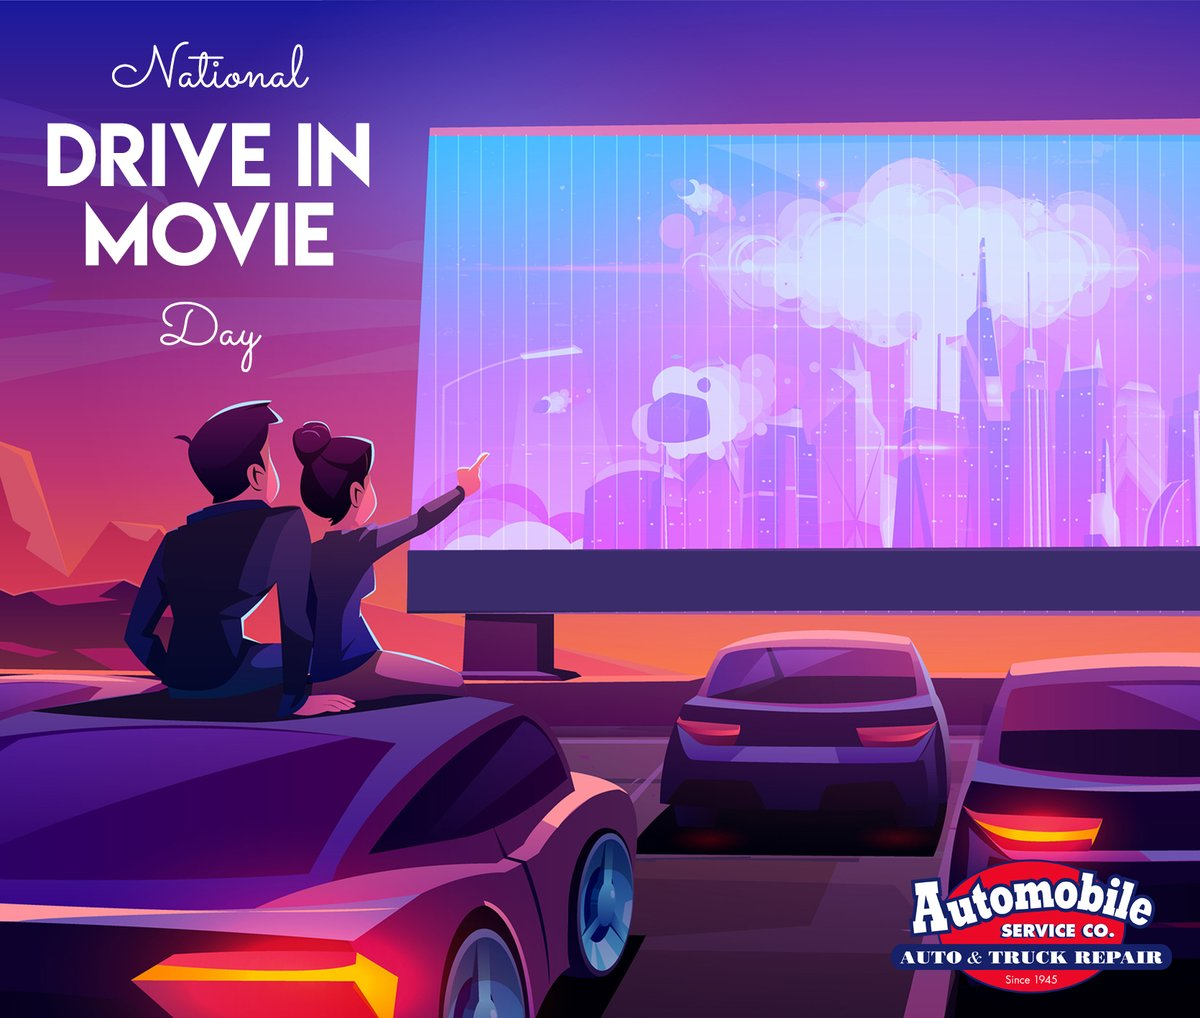 If you have one open near you, today's the day to go! #Movie #DriveInMovie #NationalDriveInMovieDay #DriveInMovieDaypic.twitter.com/P00Y2pxCab